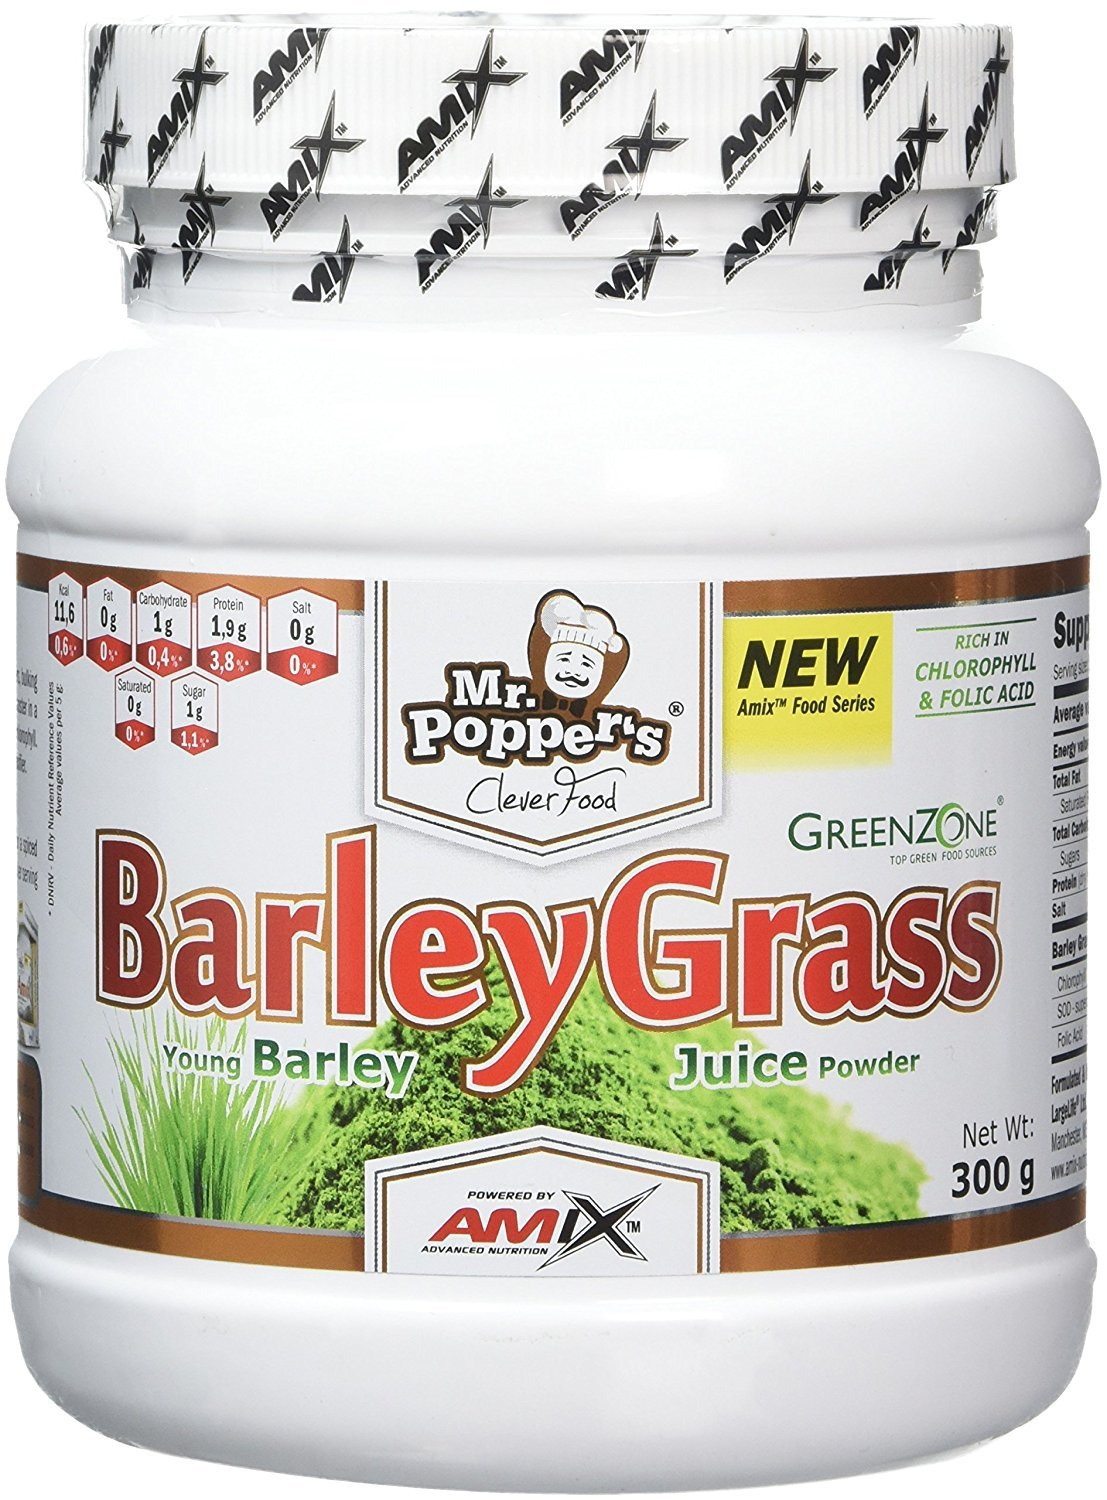 Amix Mr. PopperŽS Young Barley Grass Alimentación Natural - 300 gr_8594159534742: Amazon.es: Salud y cuidado personal